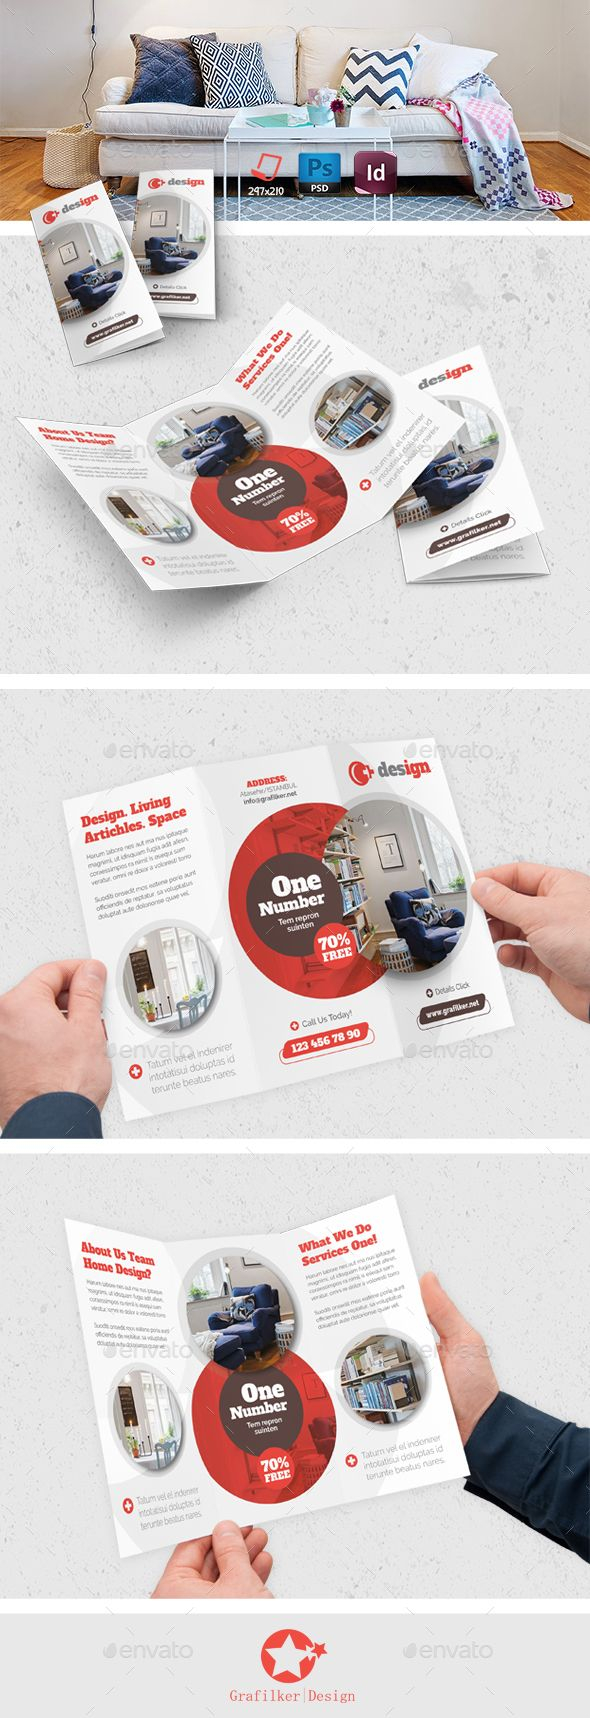 Interior Design TriFold Templates  Tri Fold Brochures And Template